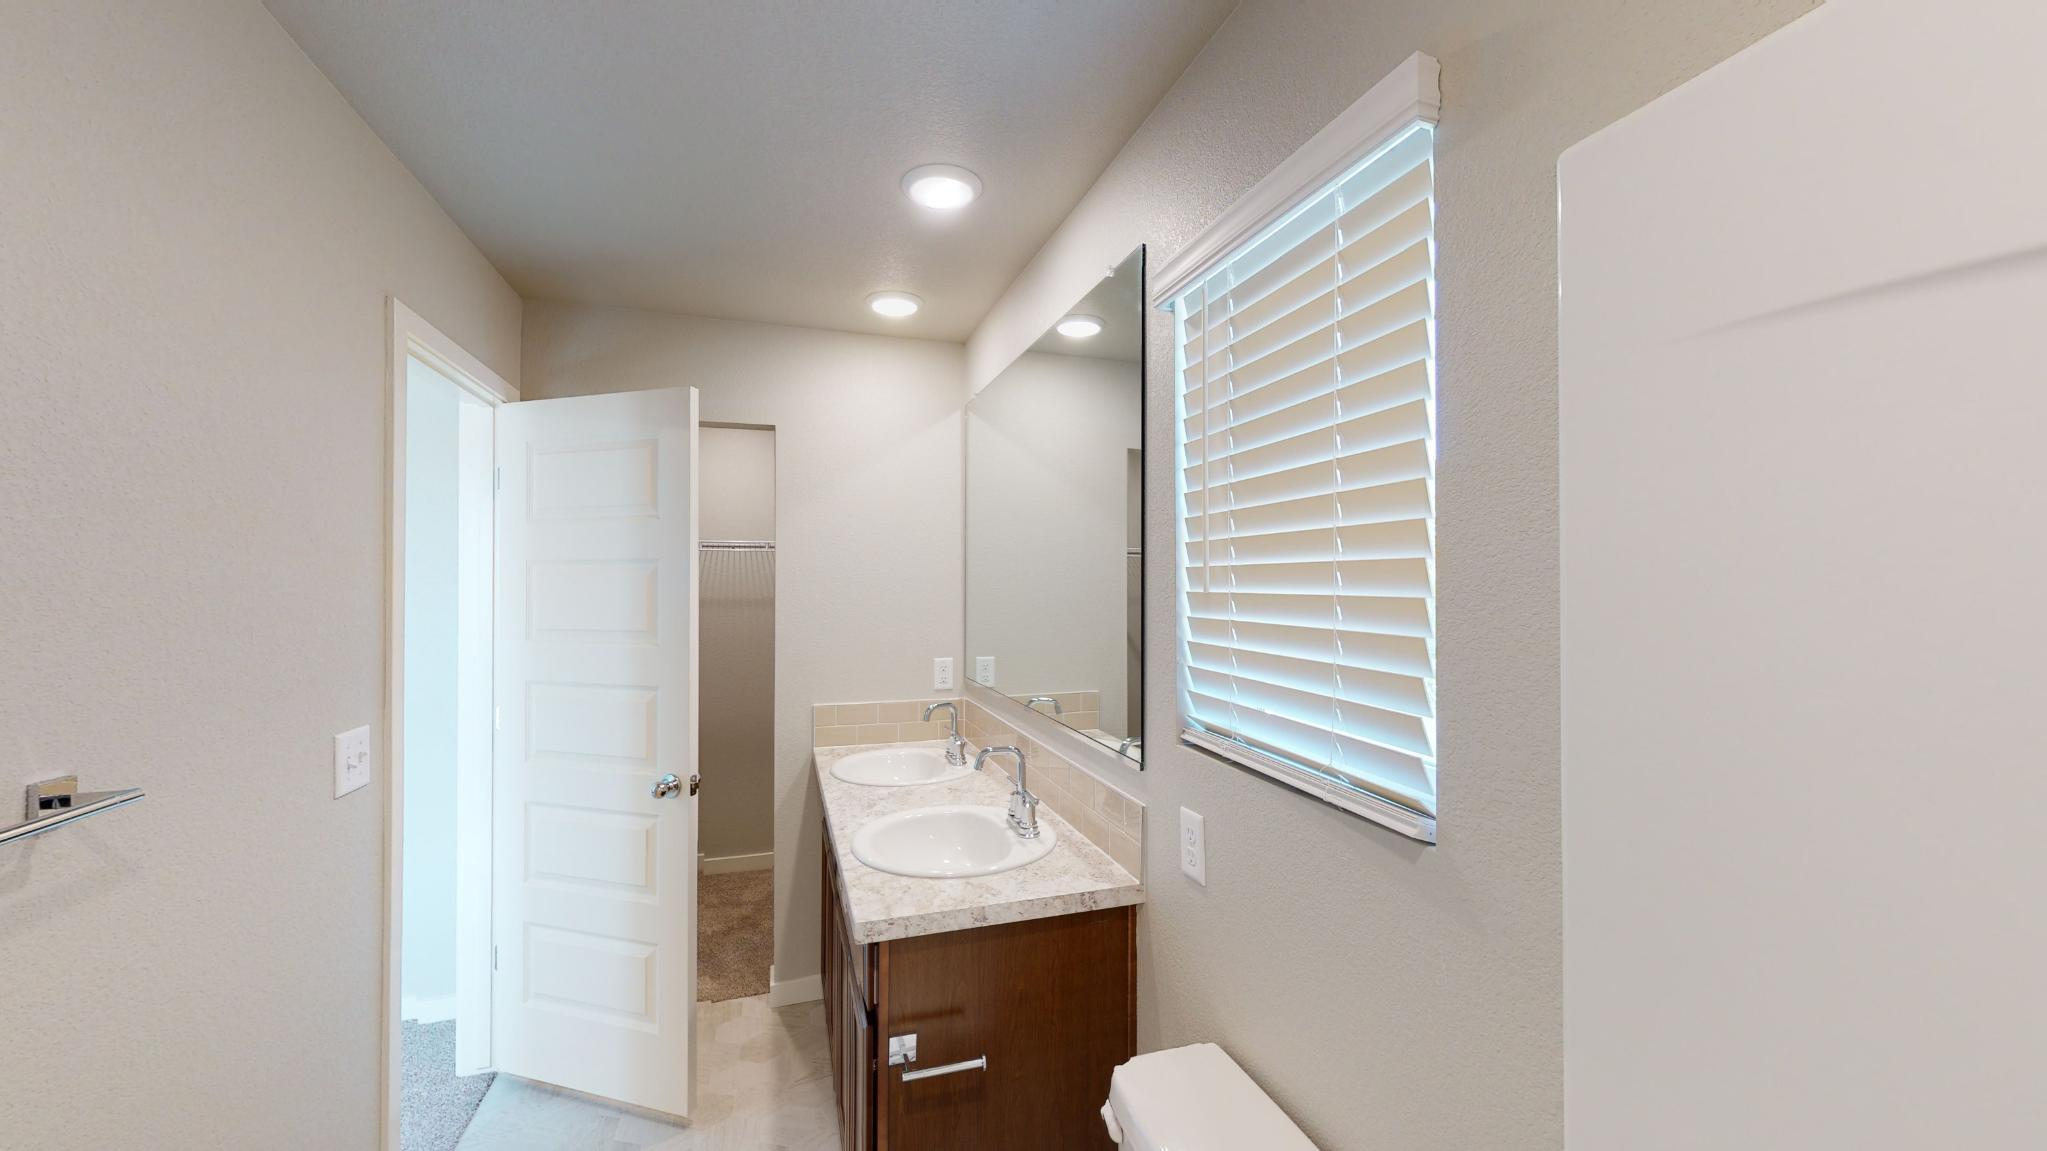 Bathroom featured in the Lindon By Baessler Homes in Greeley, CO